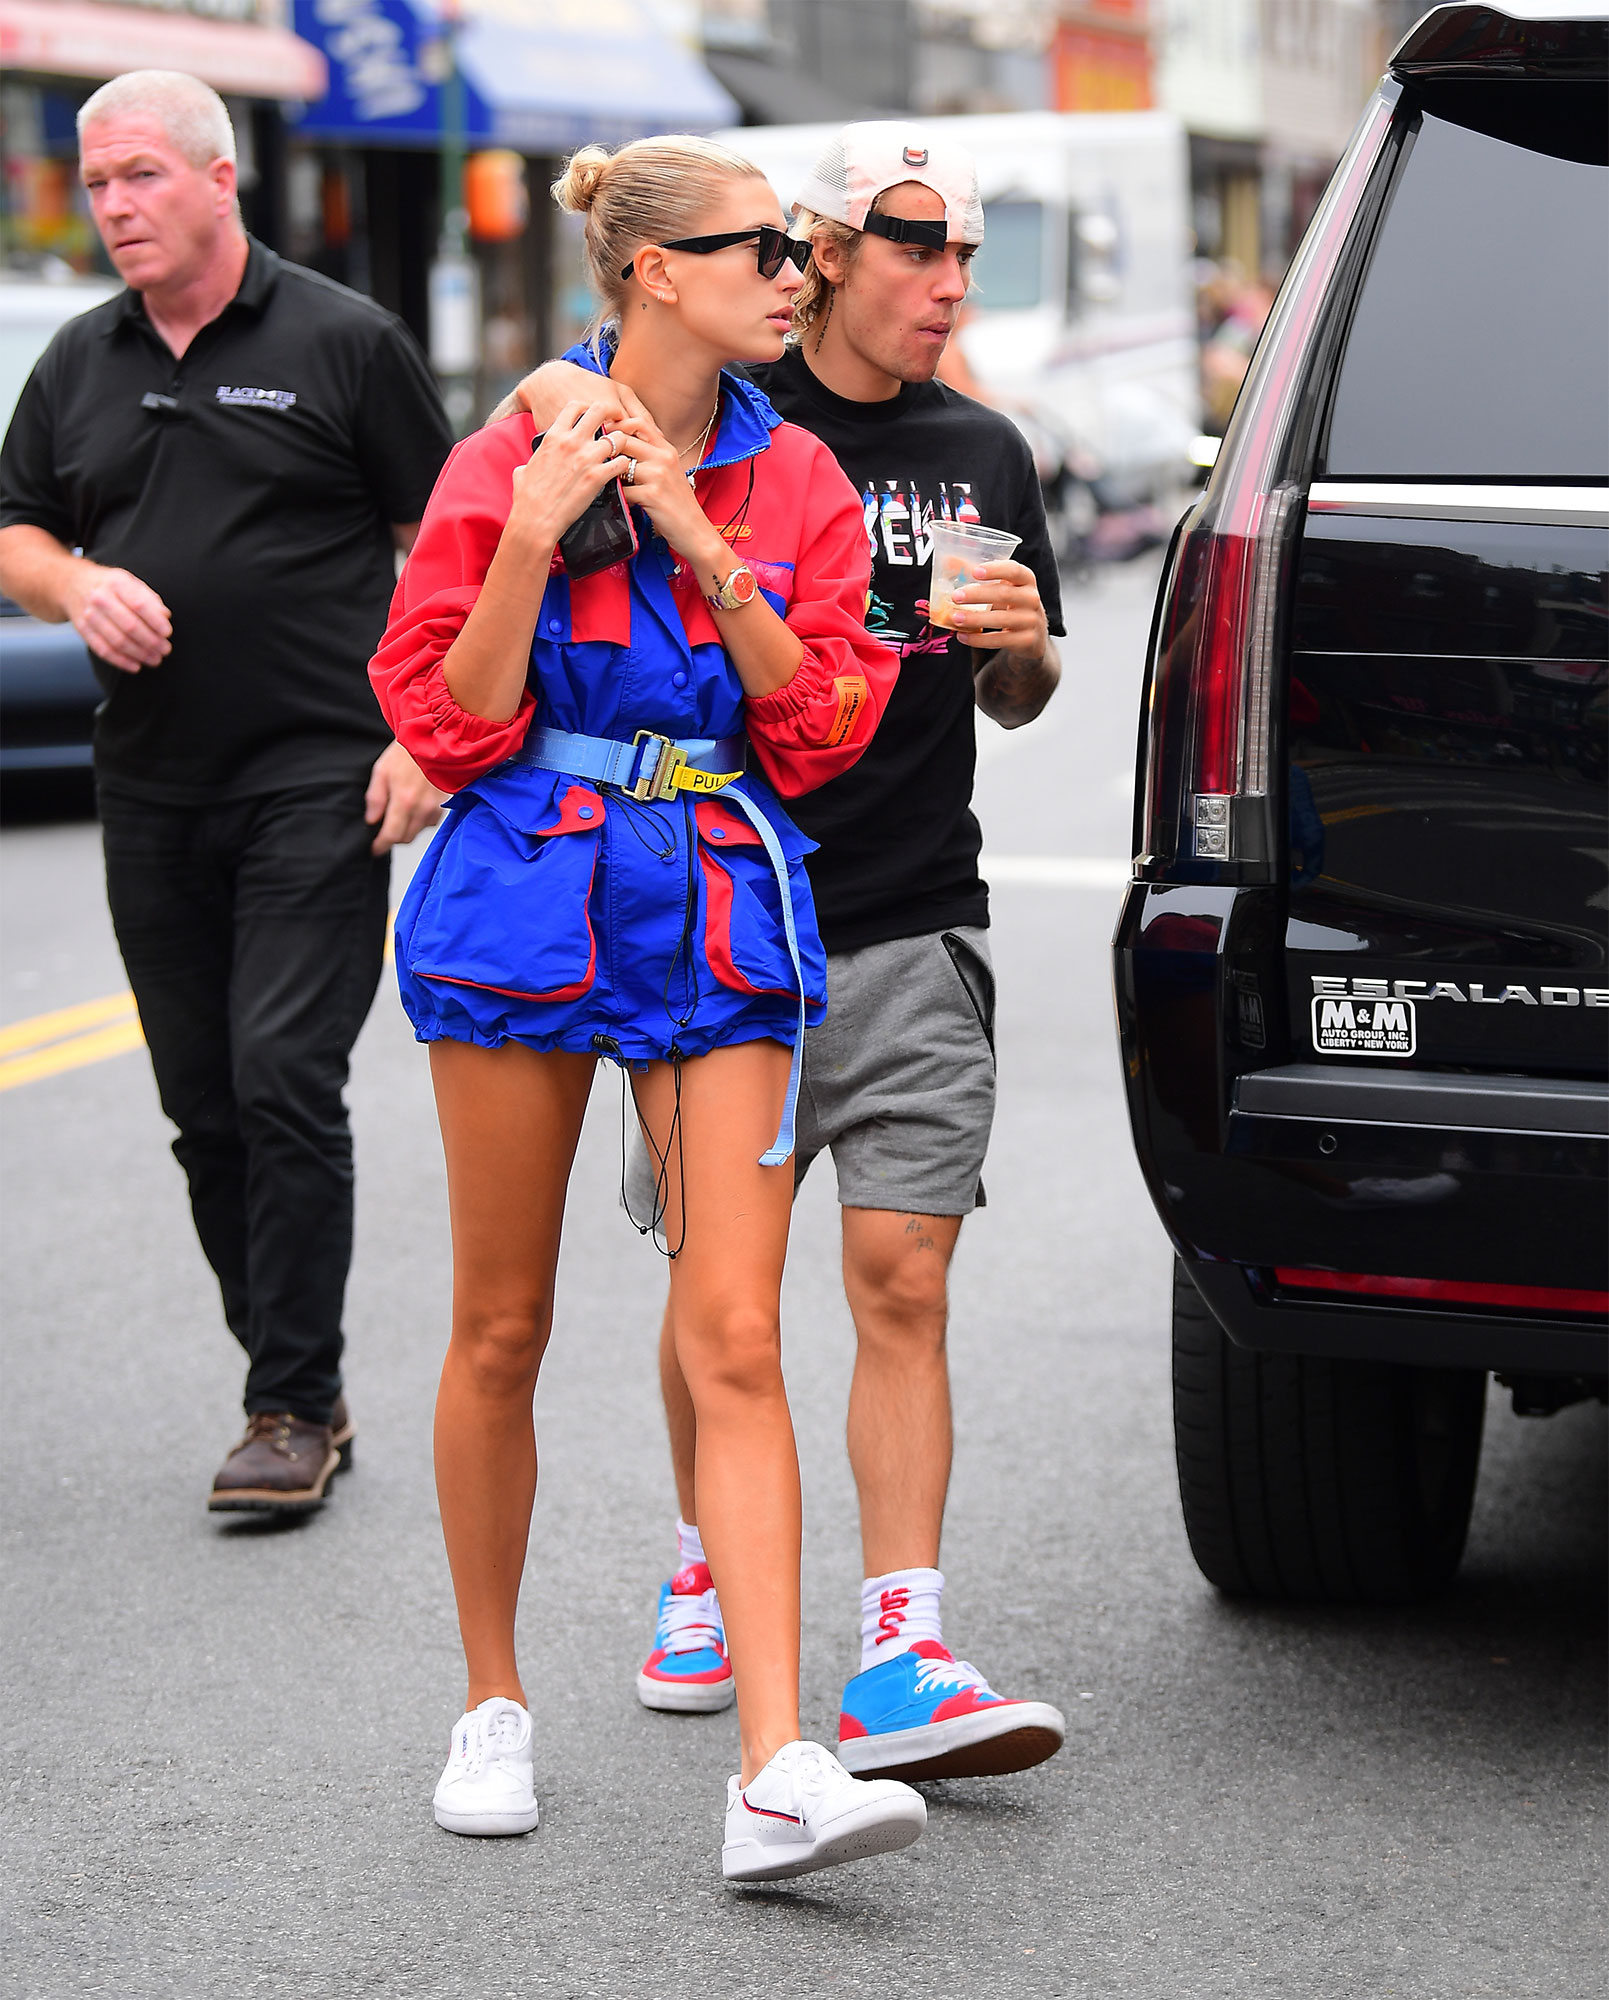 Justin Bieber And Hailey Baldwin Share A Kiss As They Grab Breakfast At A Famous Brooklyn Deli In Brooklyn